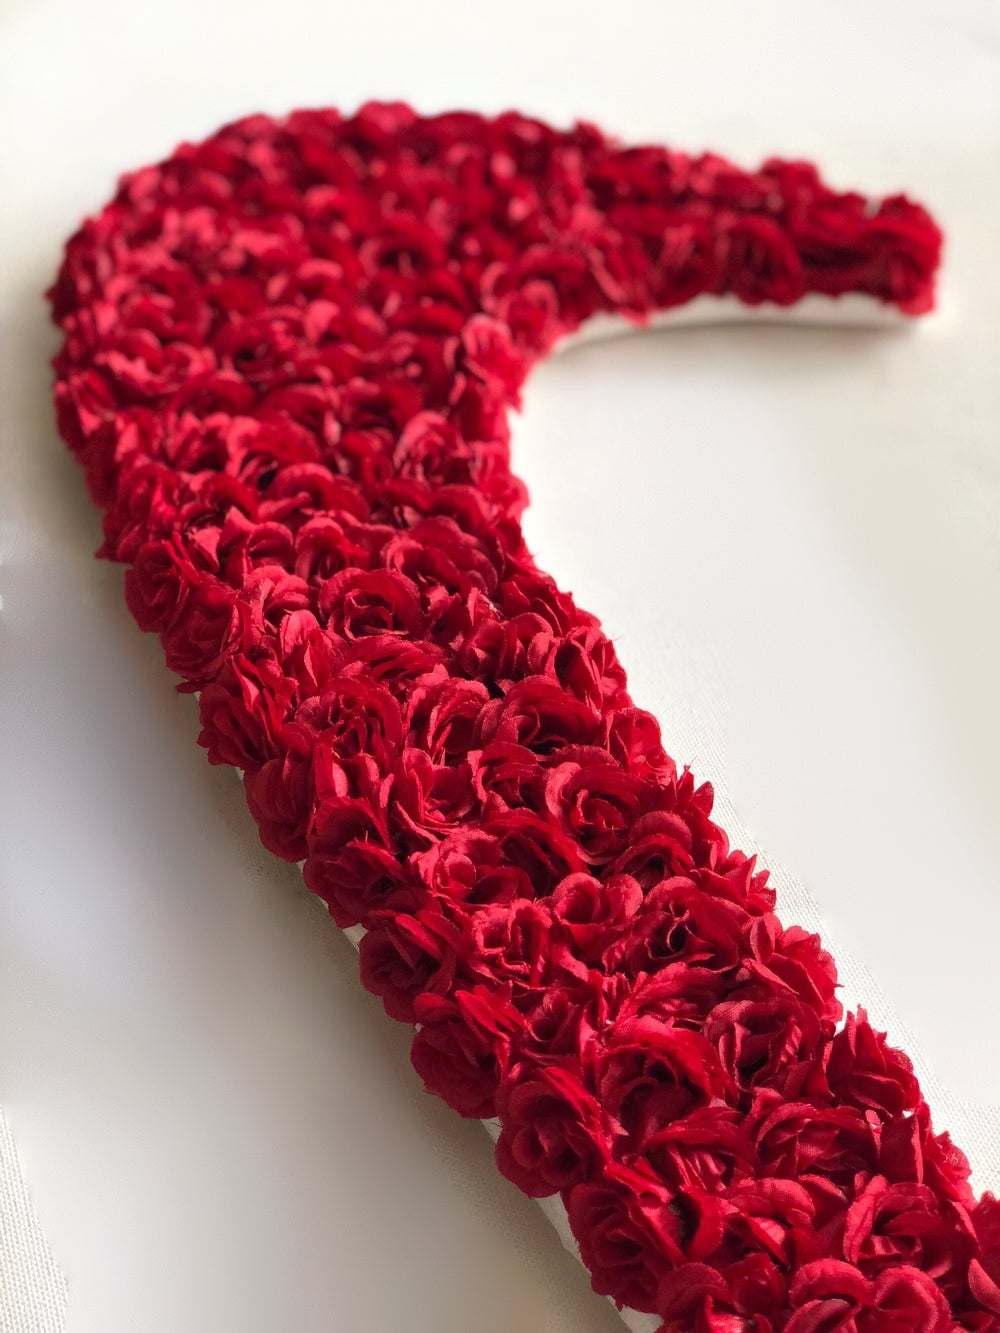 Swoosh in Bloom - Red Roses